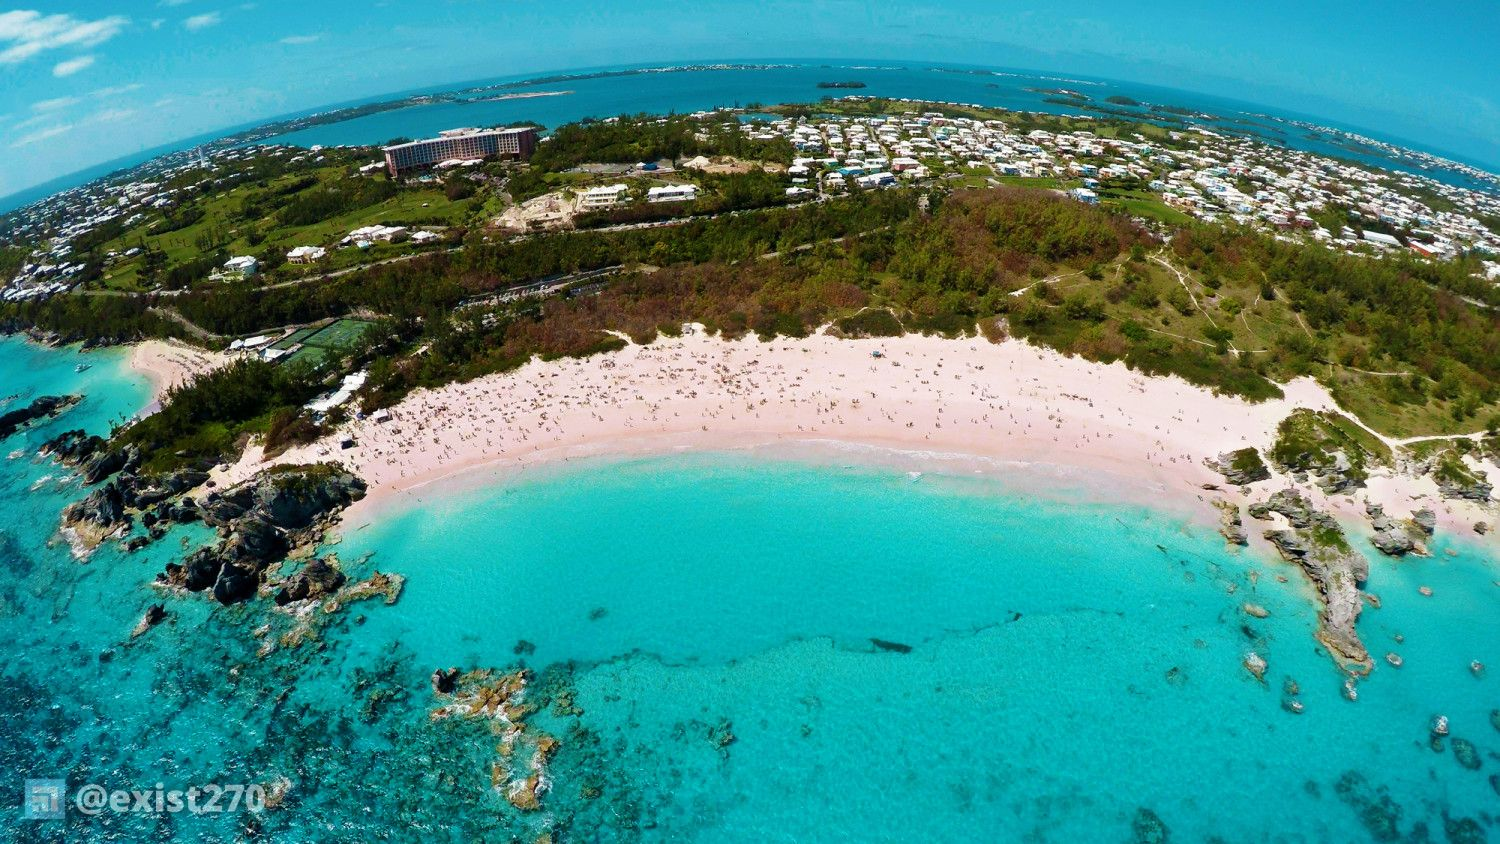 An aerial view of horseshoe bay beach